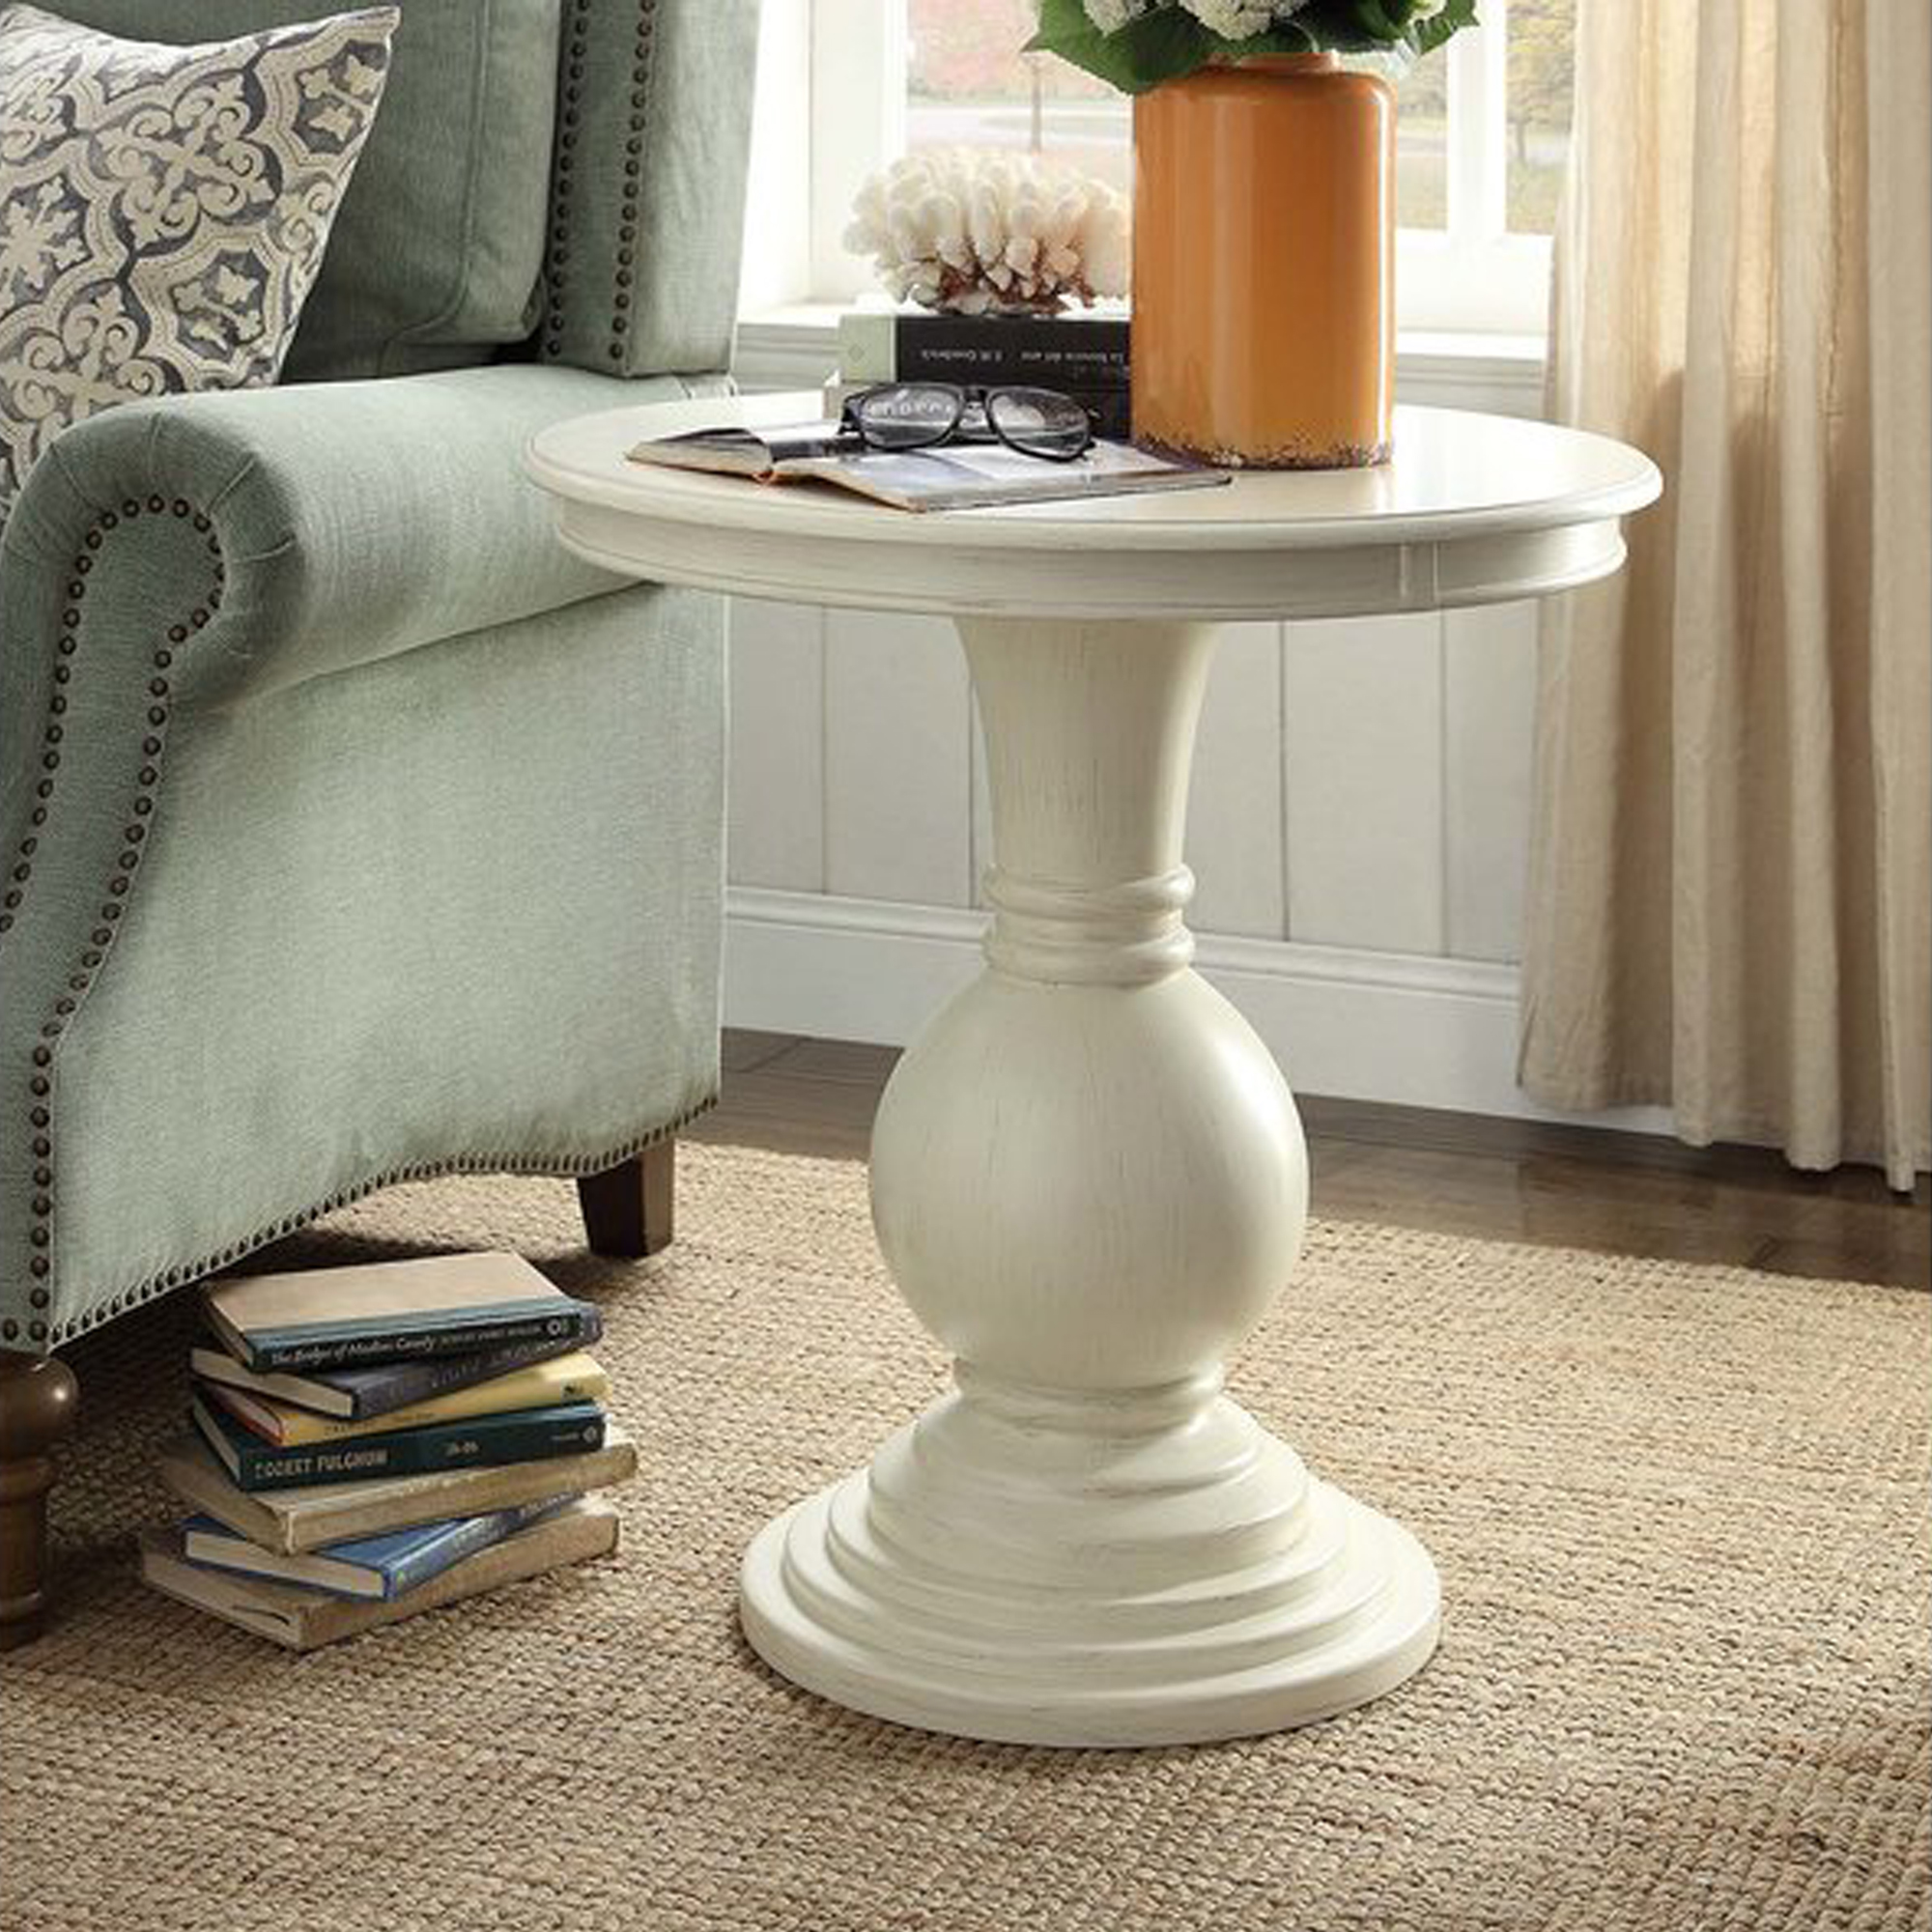 tall pedestal accent table design ideas round end tables side lamp for wrought iron small black distressed off white best accentuate your living room chairs ikea mosaic bistro